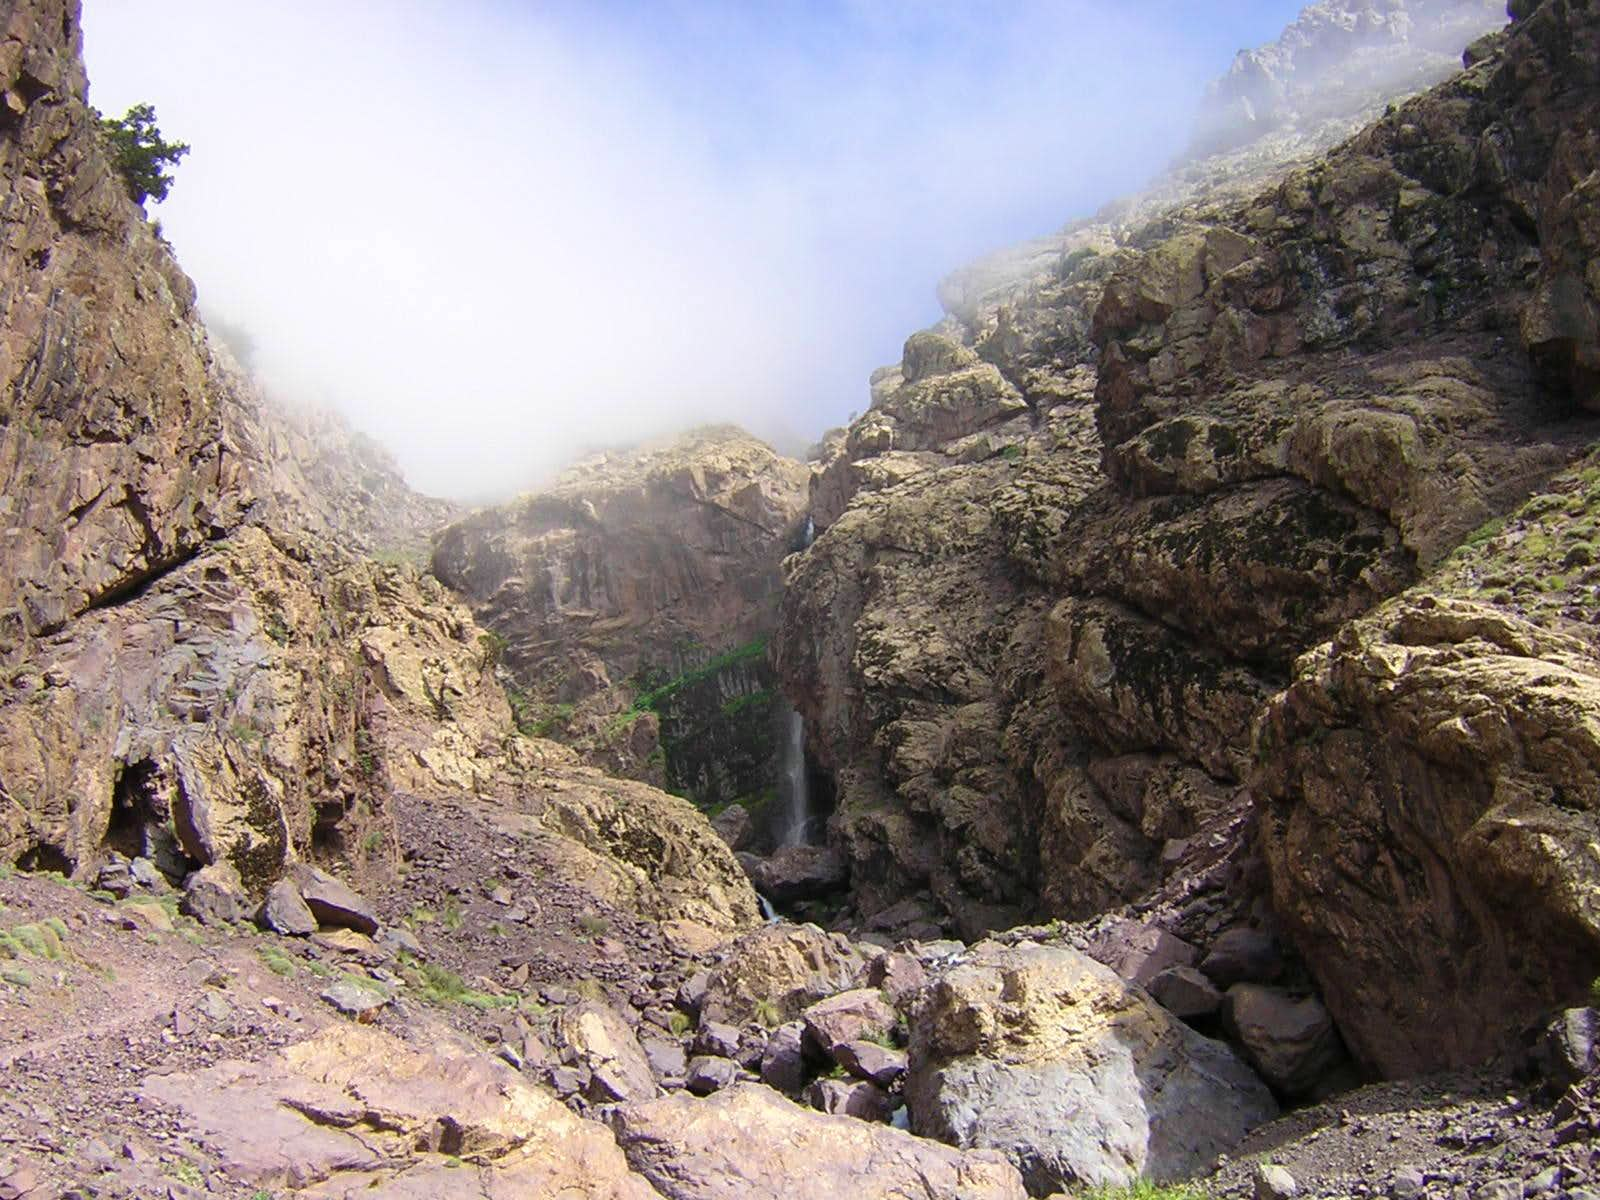 Toubkal Refuge to Imlil: The Hard Way